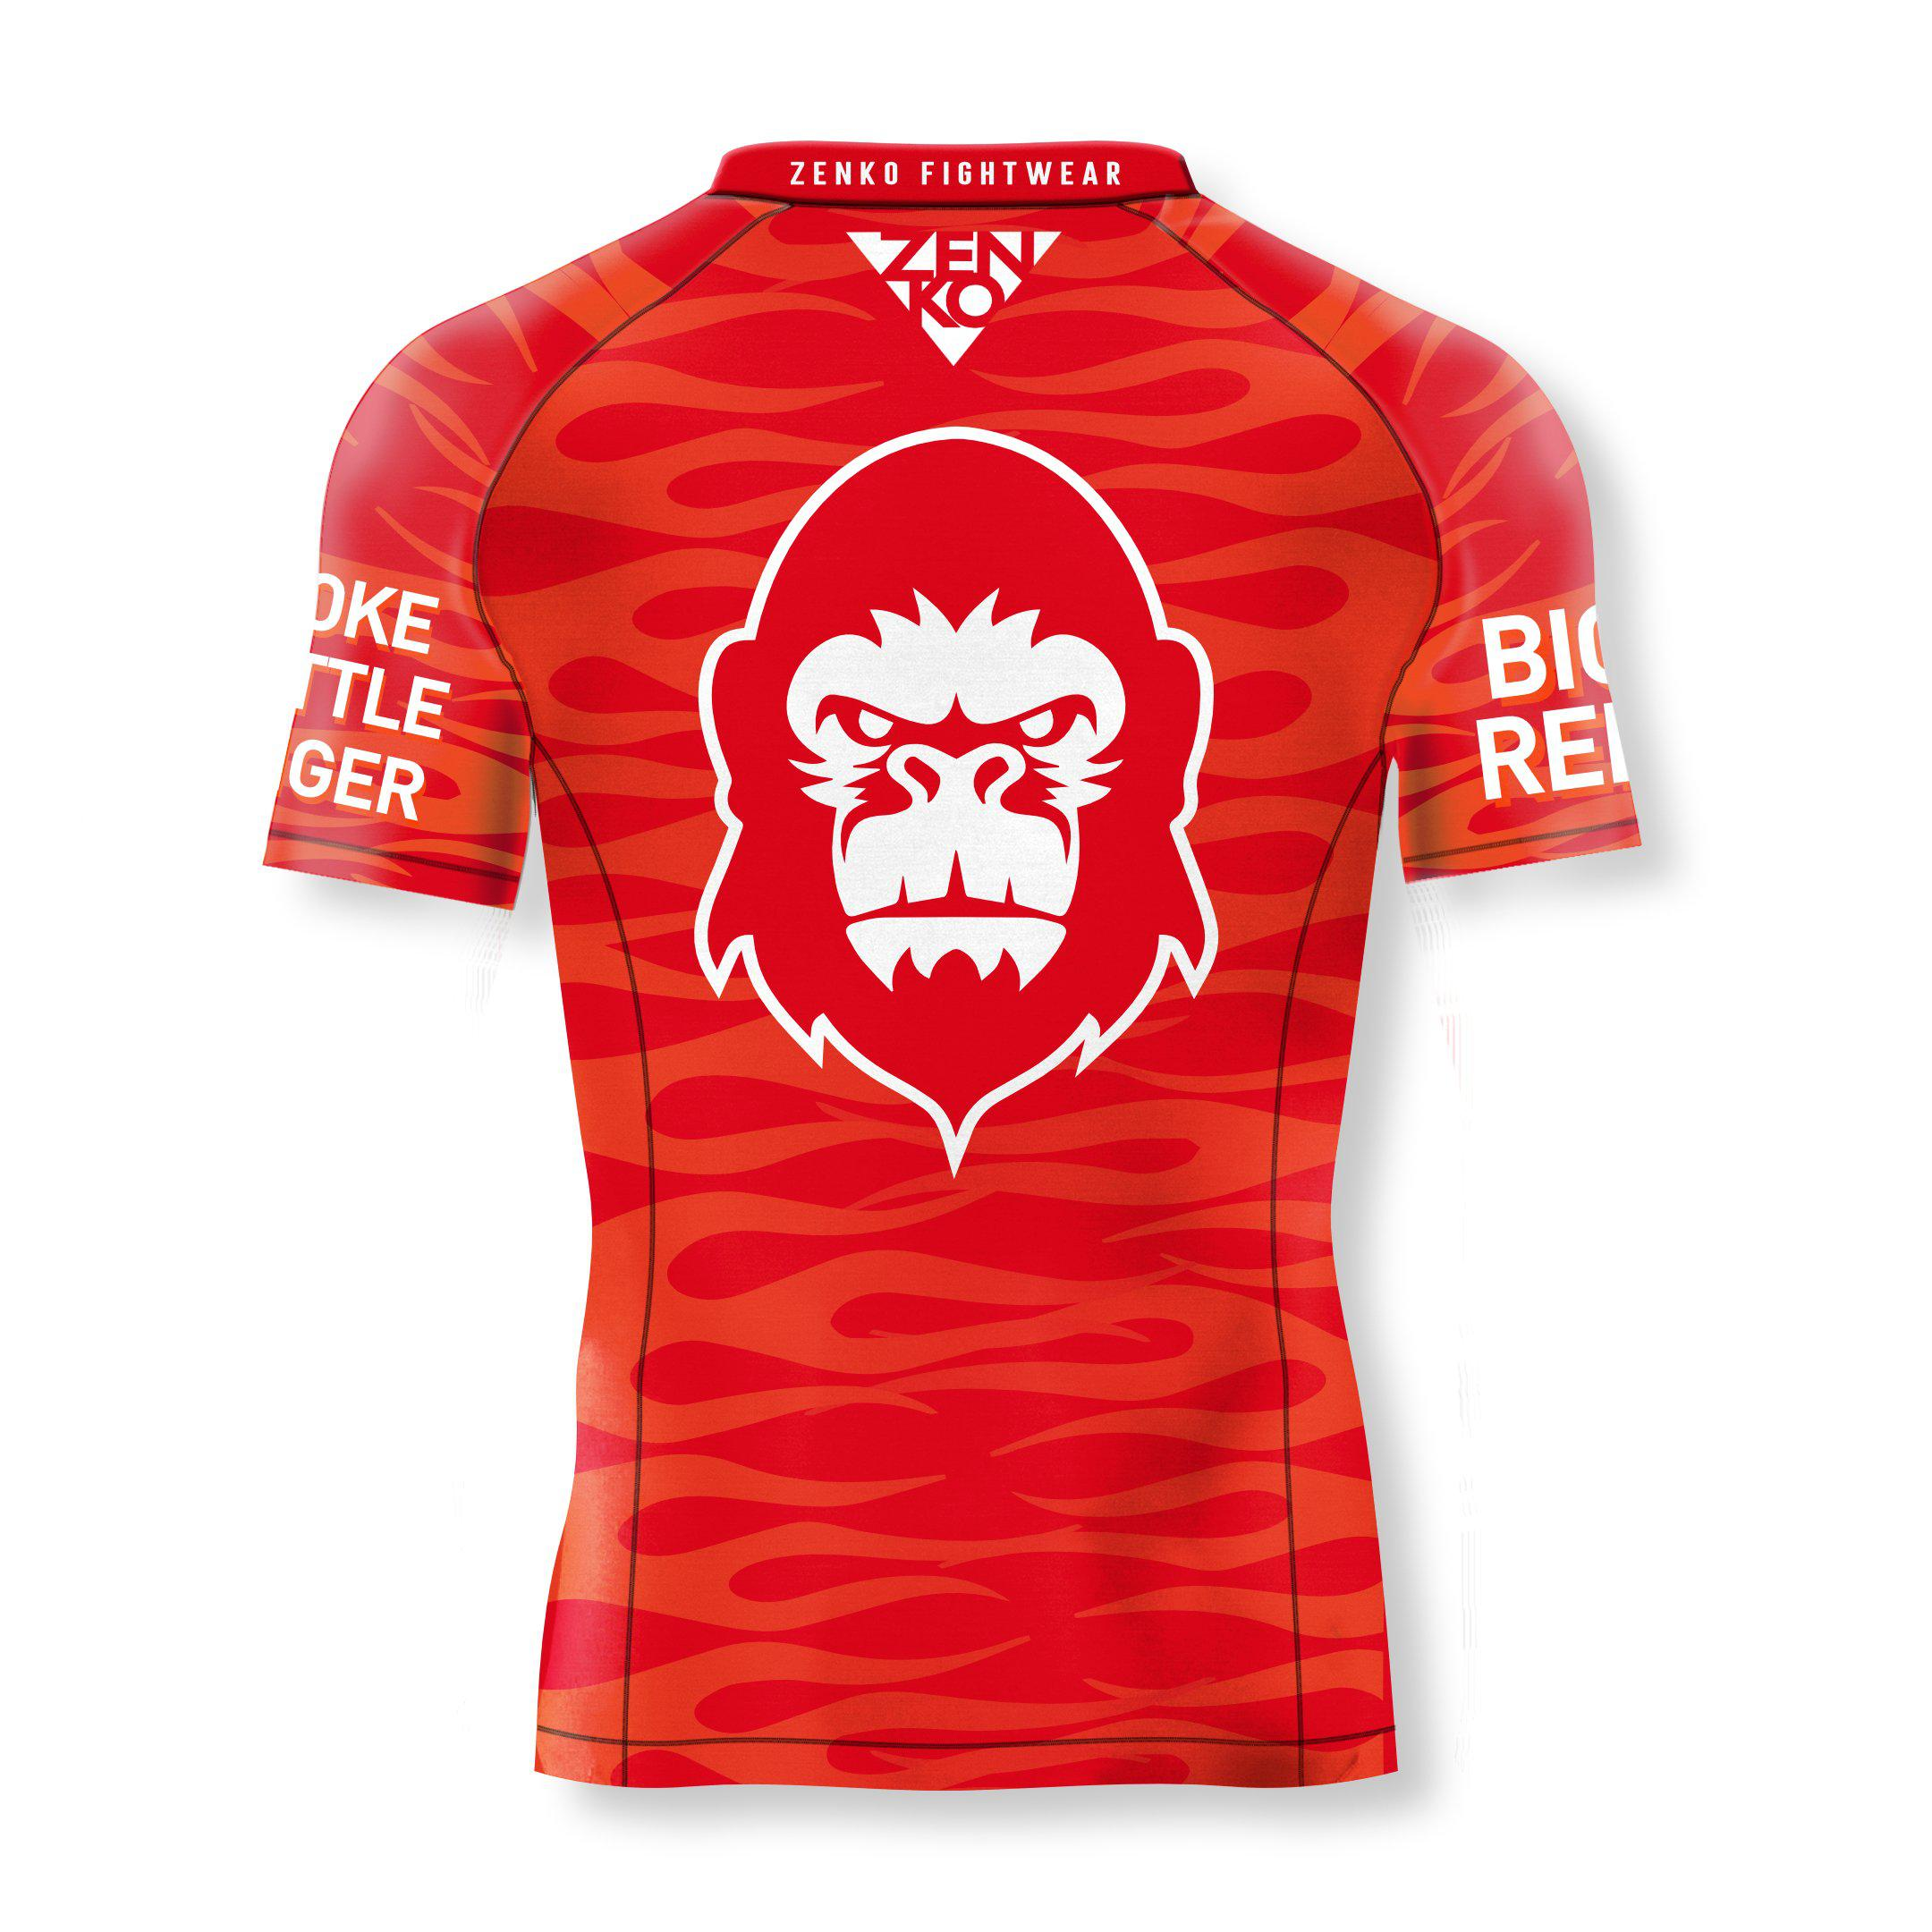 10th Planet San Mateo Big Red Short Sleeve Rashguard - Zenko Fightwear